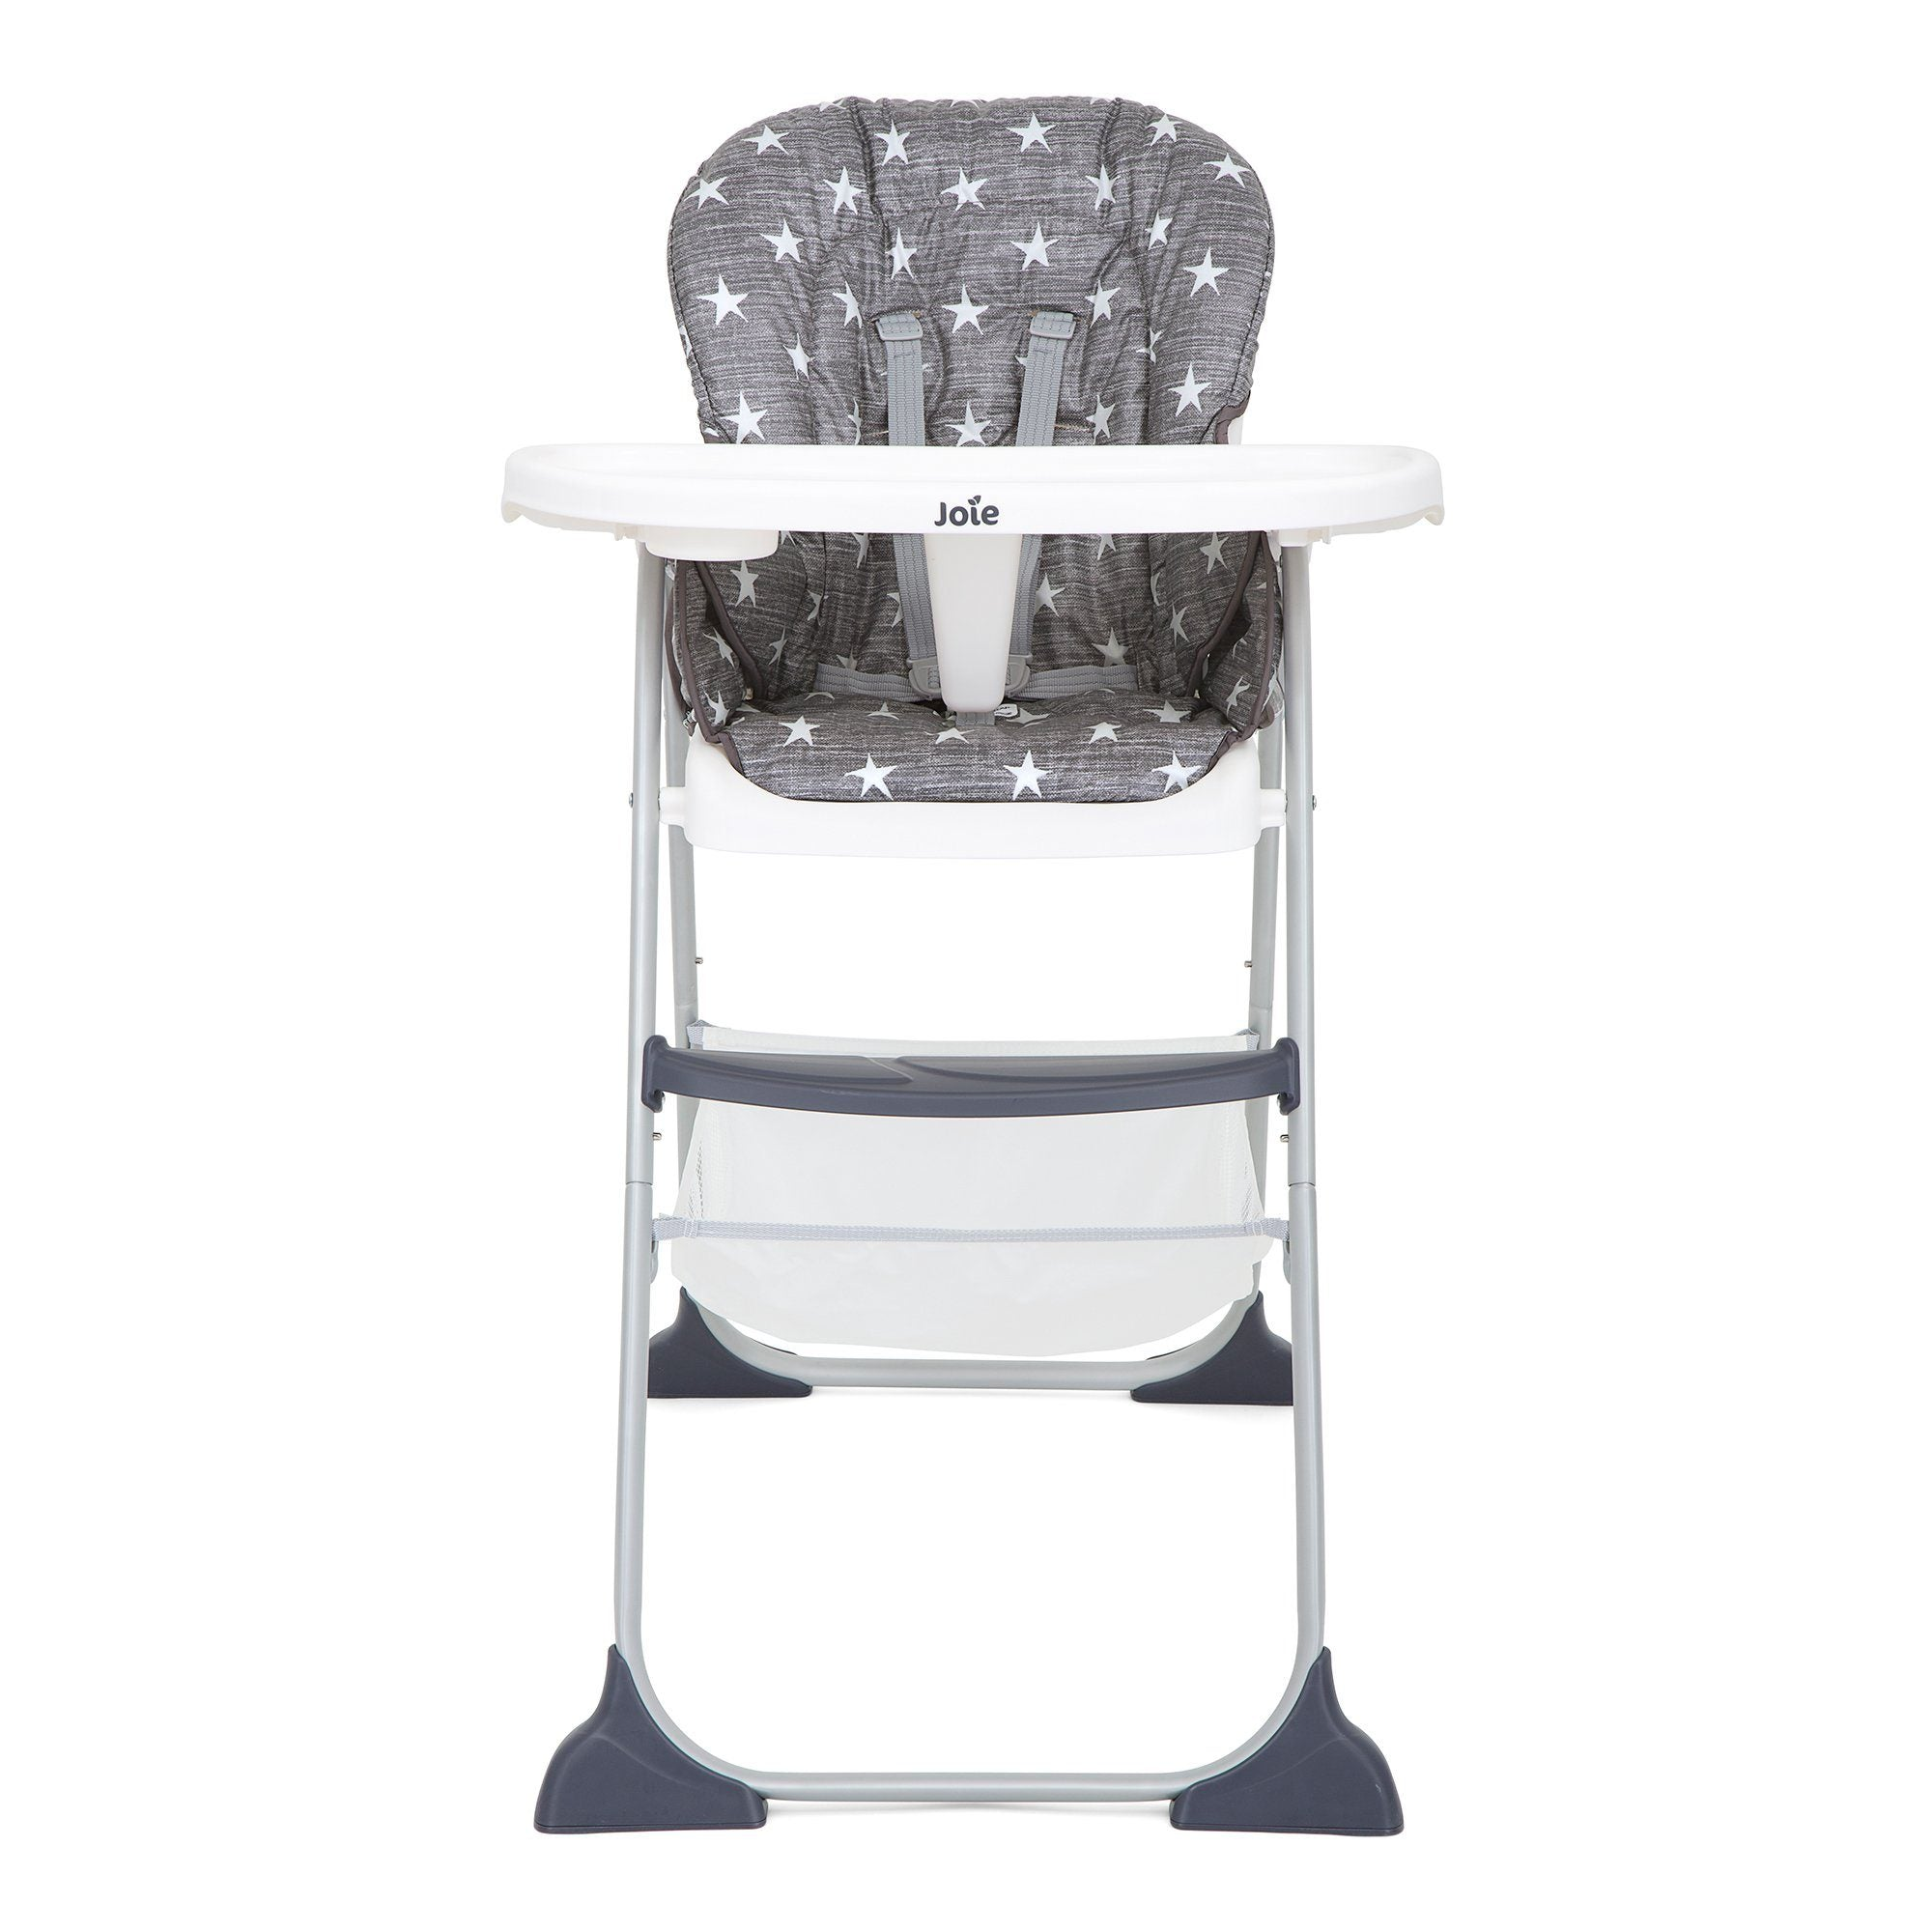 Joie Mimzy Snacker Highchair - Twinkle Linen - Pushchair Expert